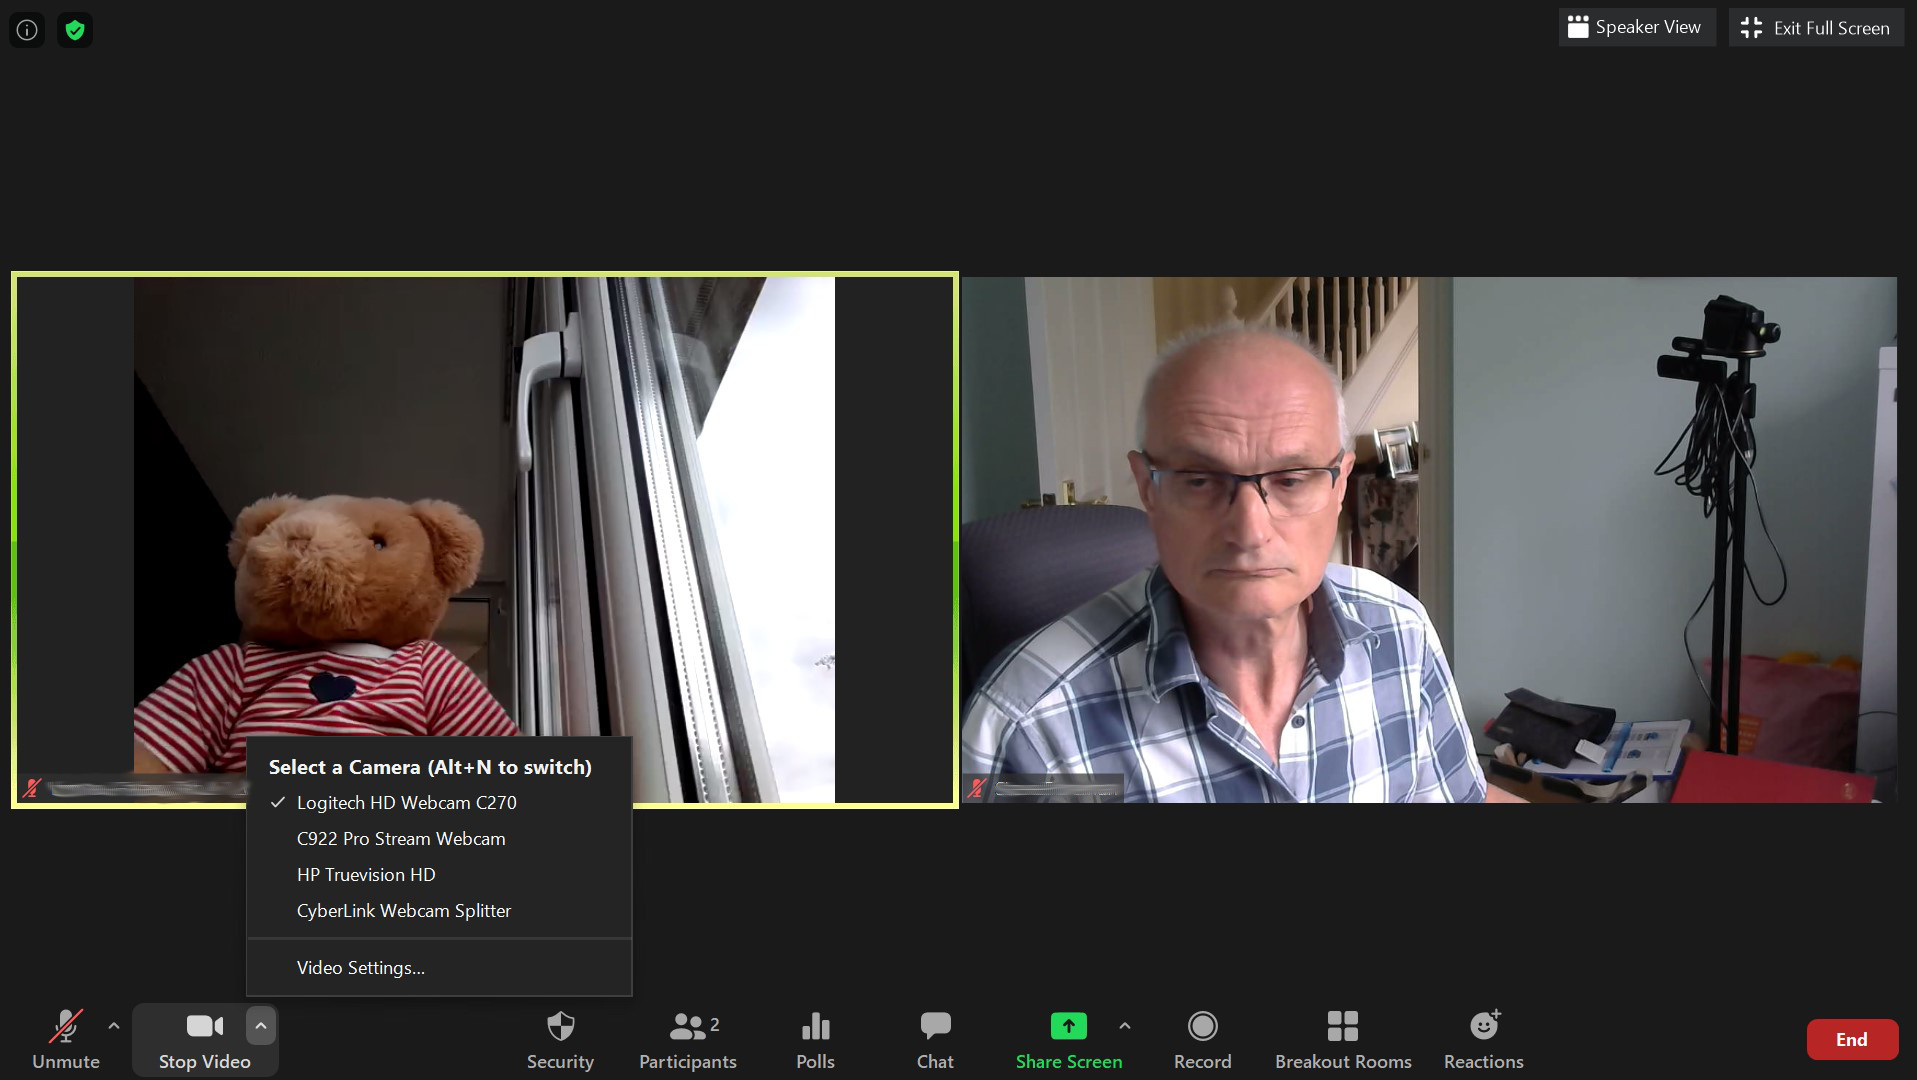 Two participants in a video conference session: a Teddy Bear and an adult male.